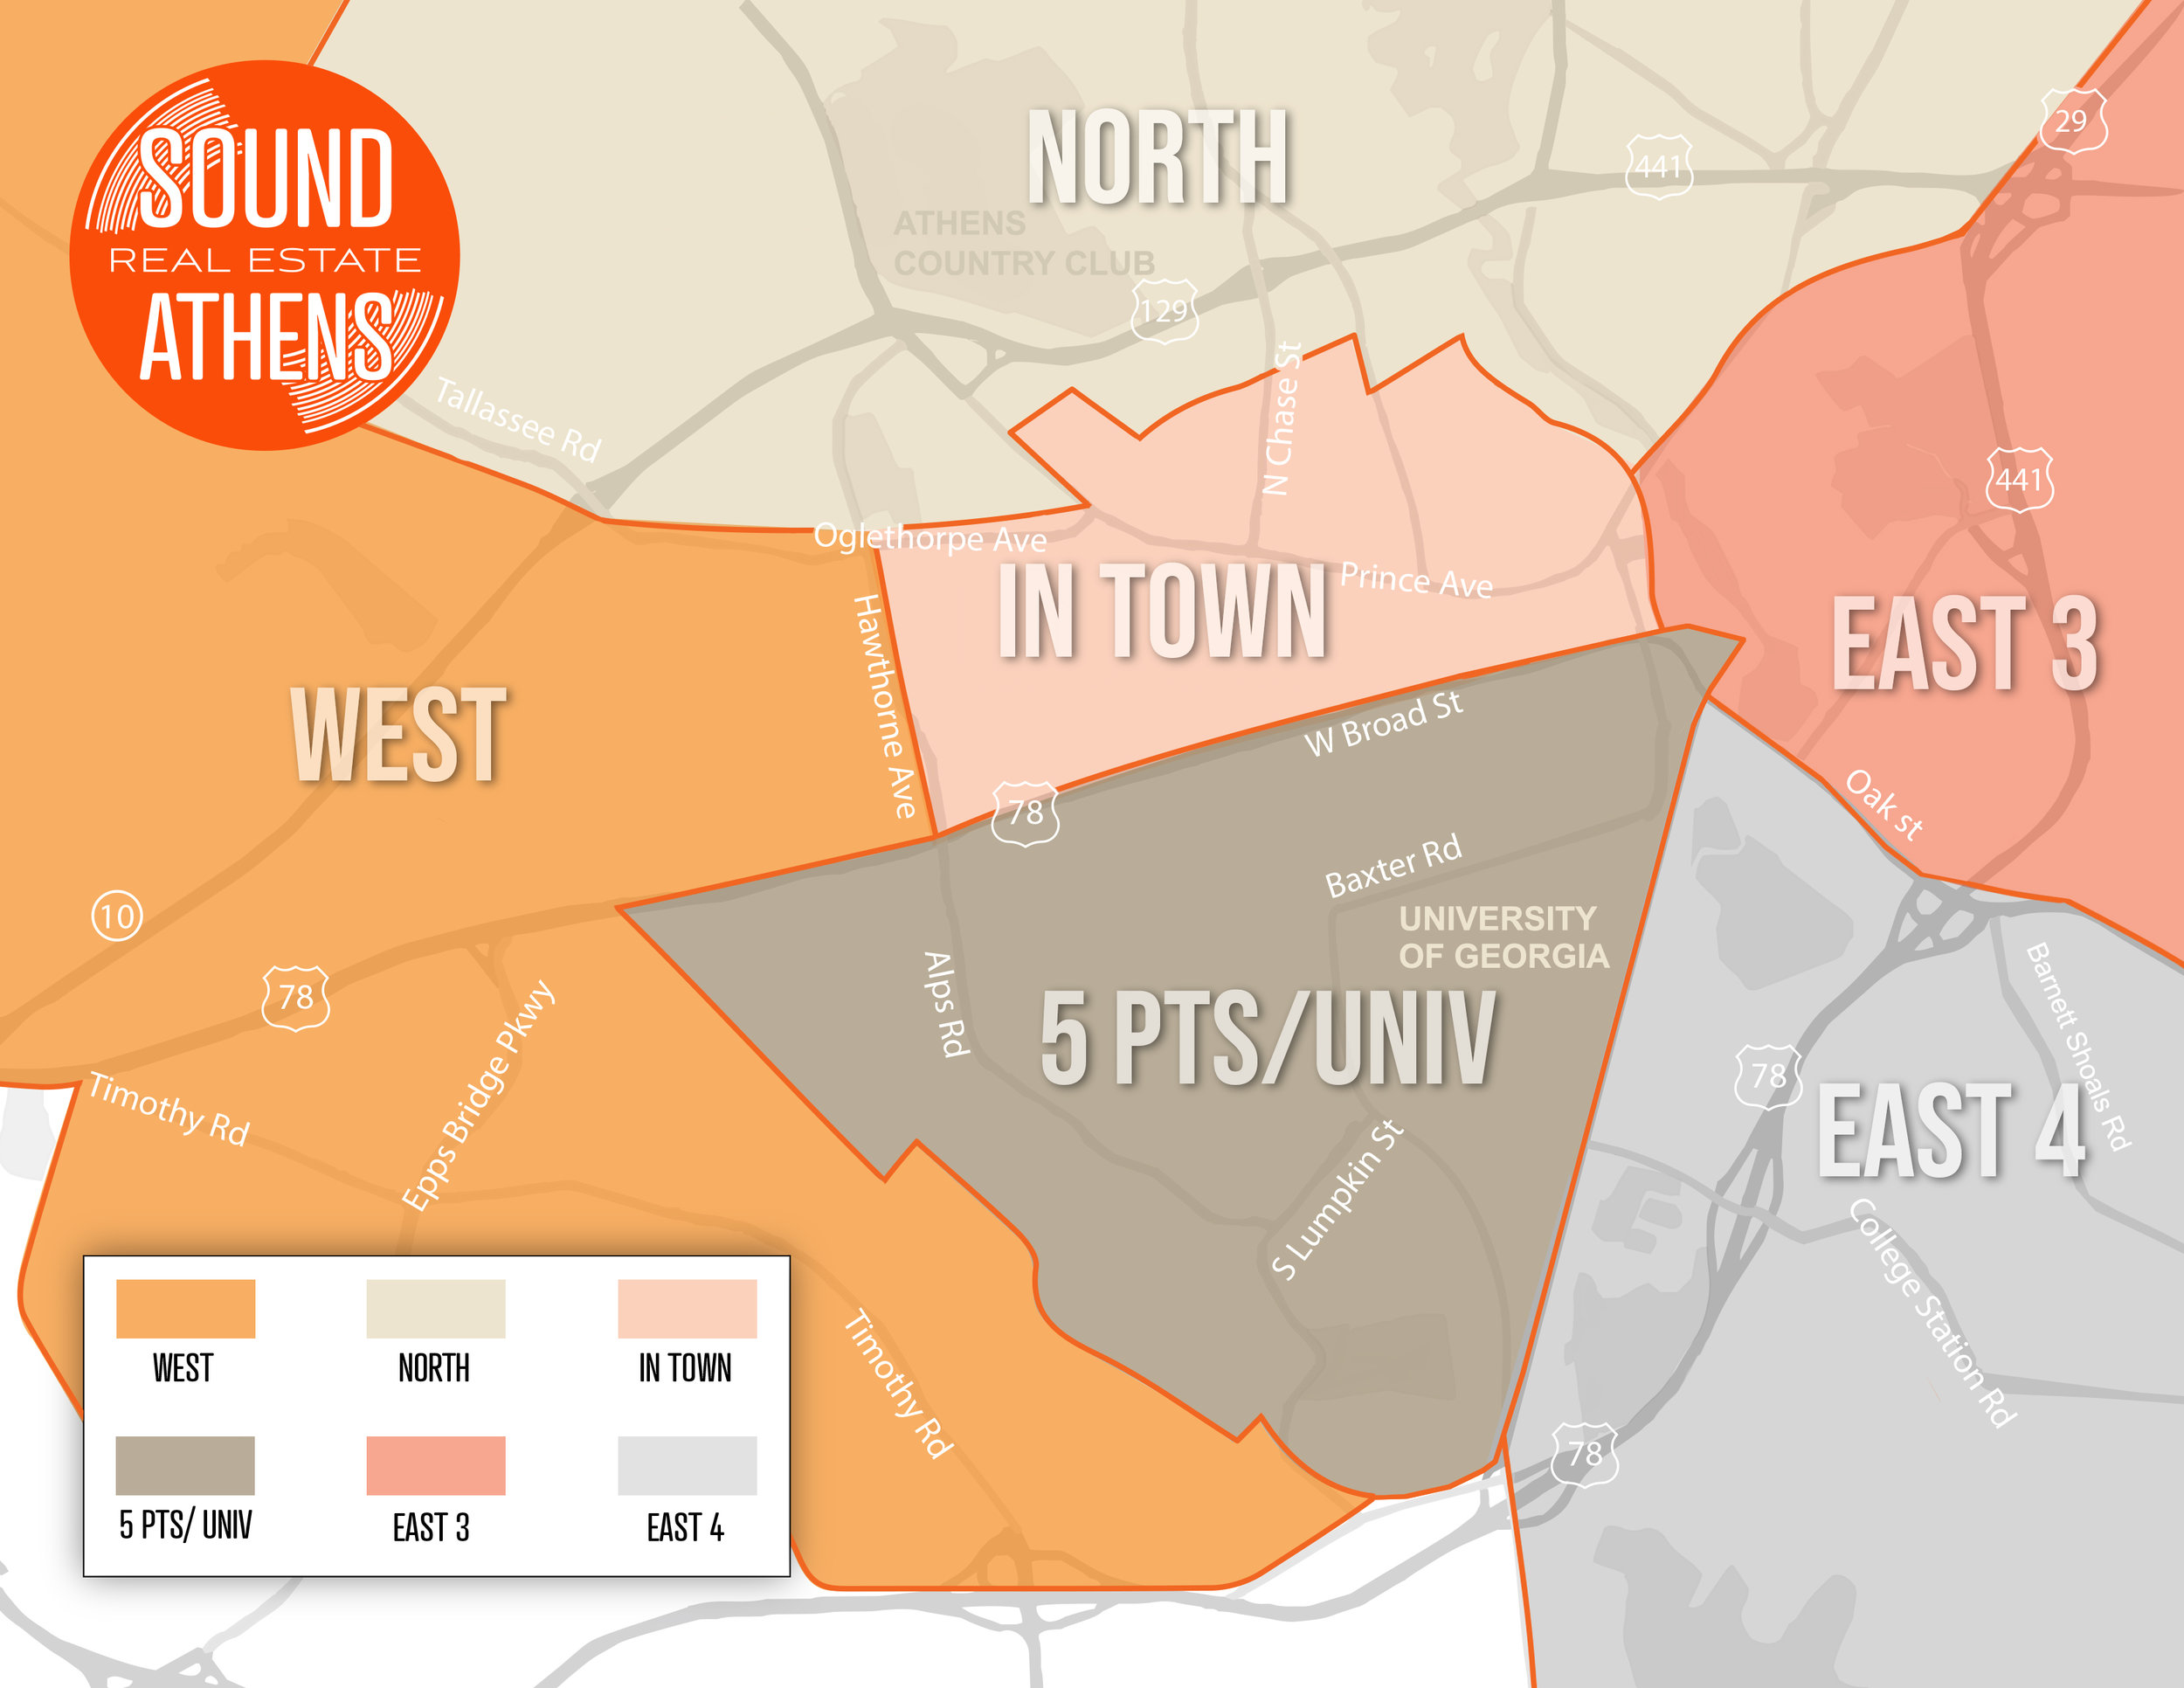 MLS Classification of Athens, GA neighborhoods fall into one of 6 distinct areas as displayed above. The actual neighborhood names, within these areas, differ-- more information below, or call Brant if you need help!